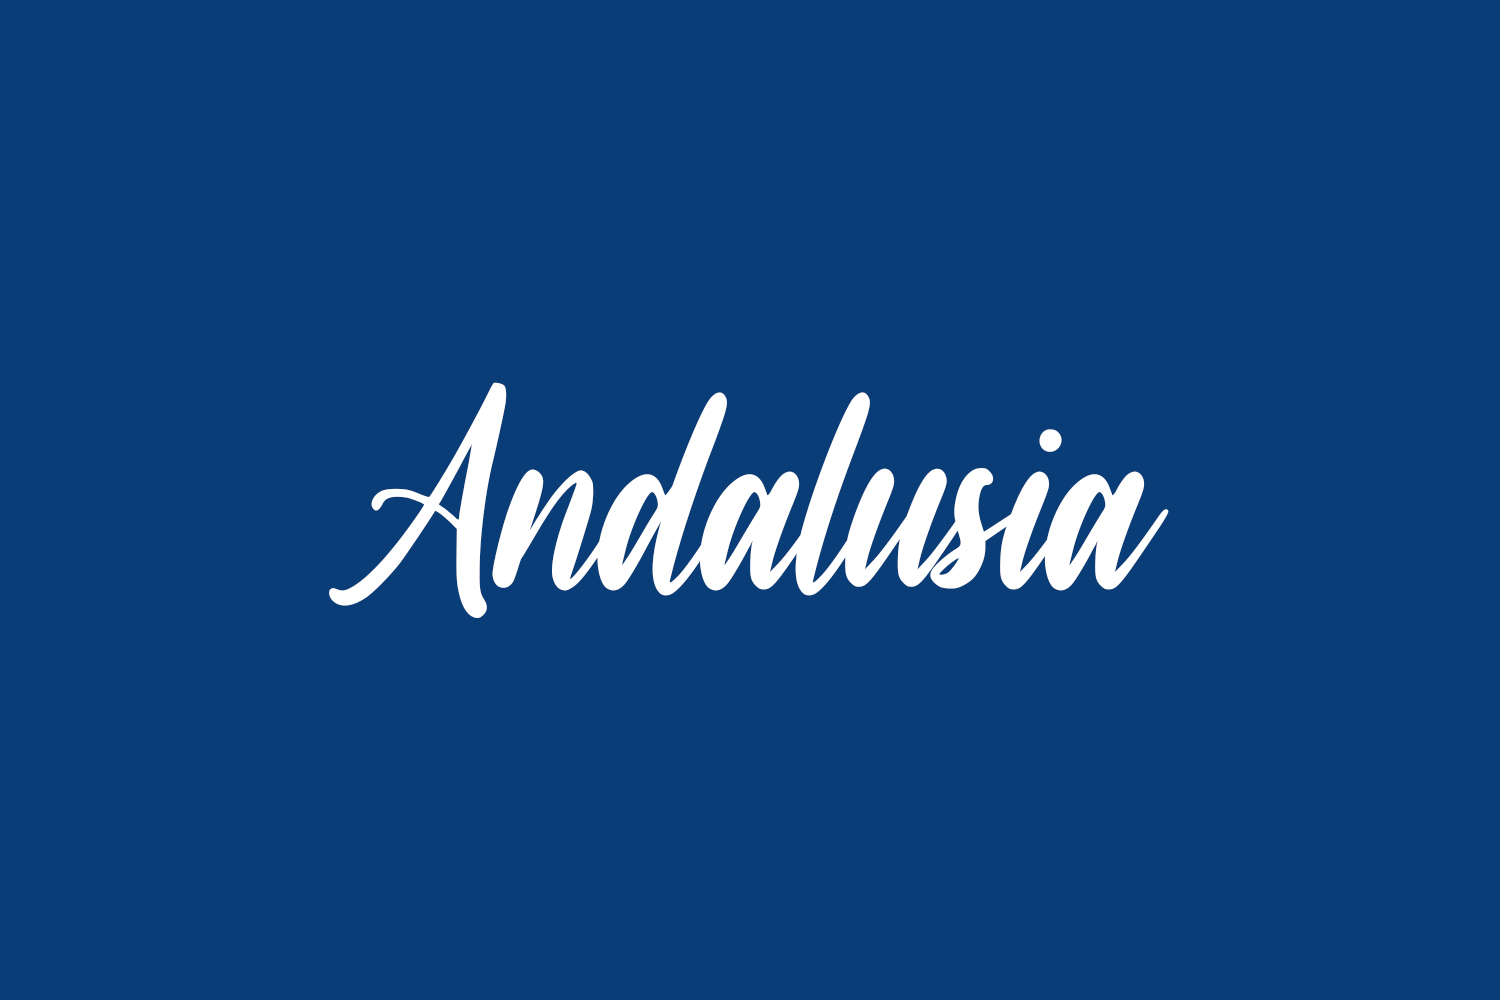 Andalusia Free Font